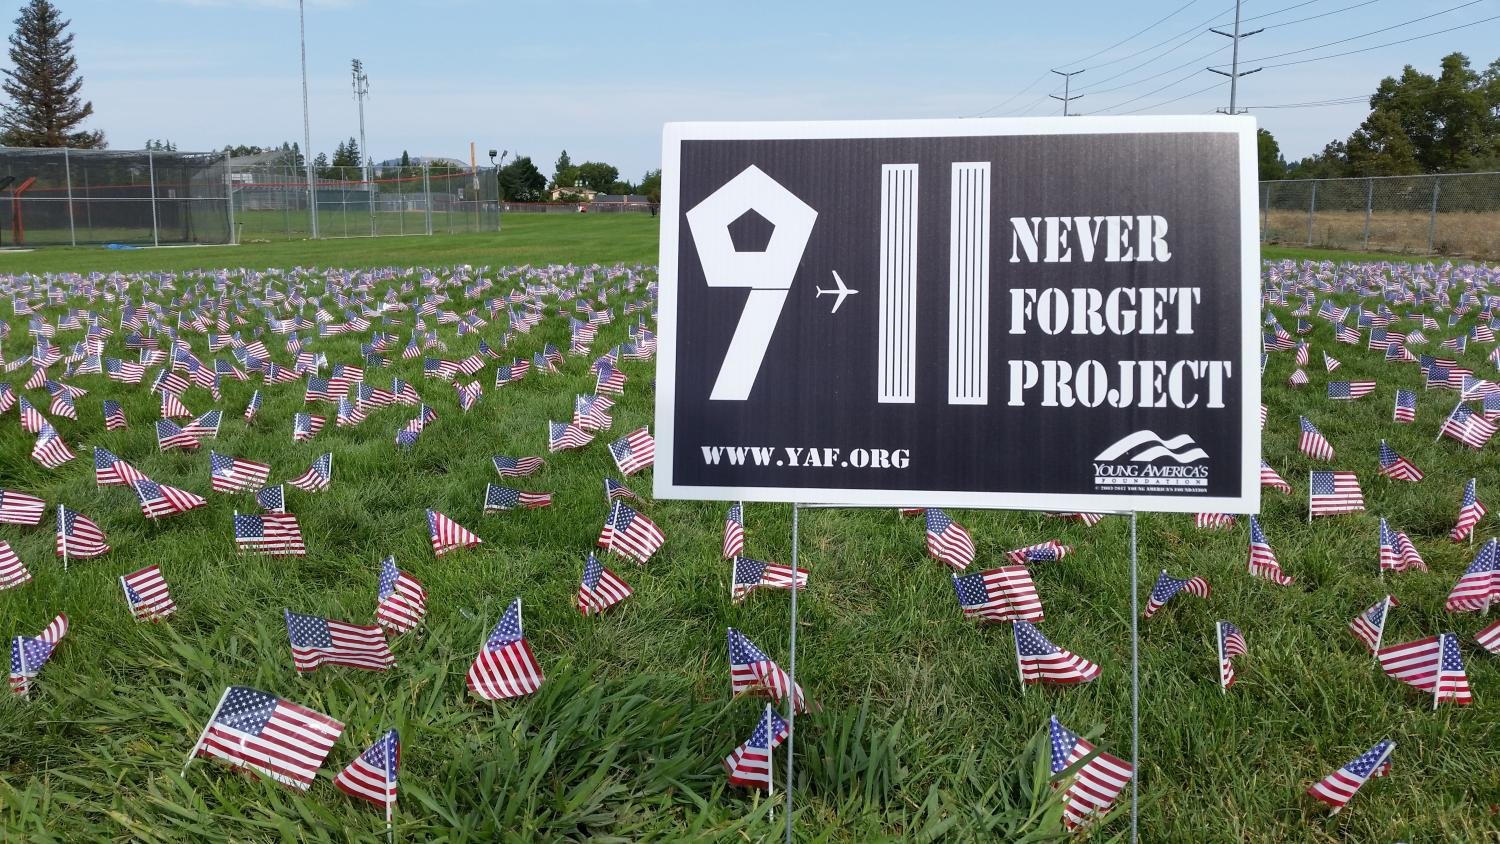 The Freedom Alliance Club placed American flags behind the Ed Noble baseball field for September 11.